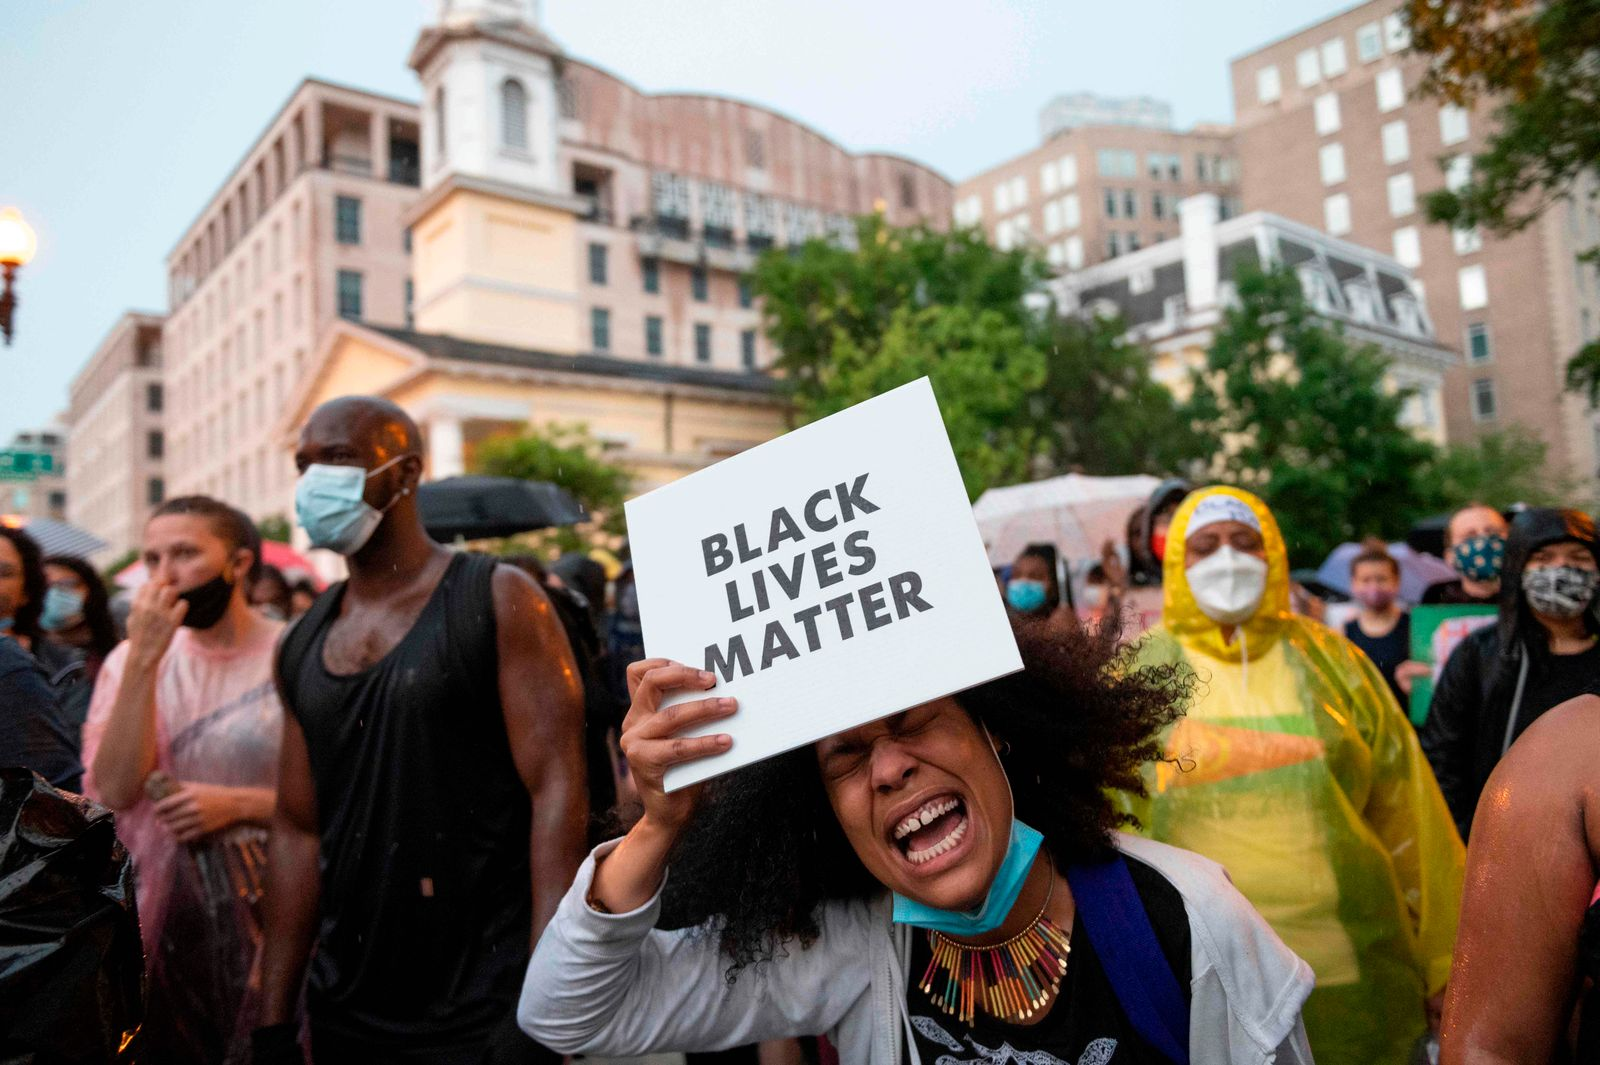 Black Lives Matter protests across the country after George Floyd's death